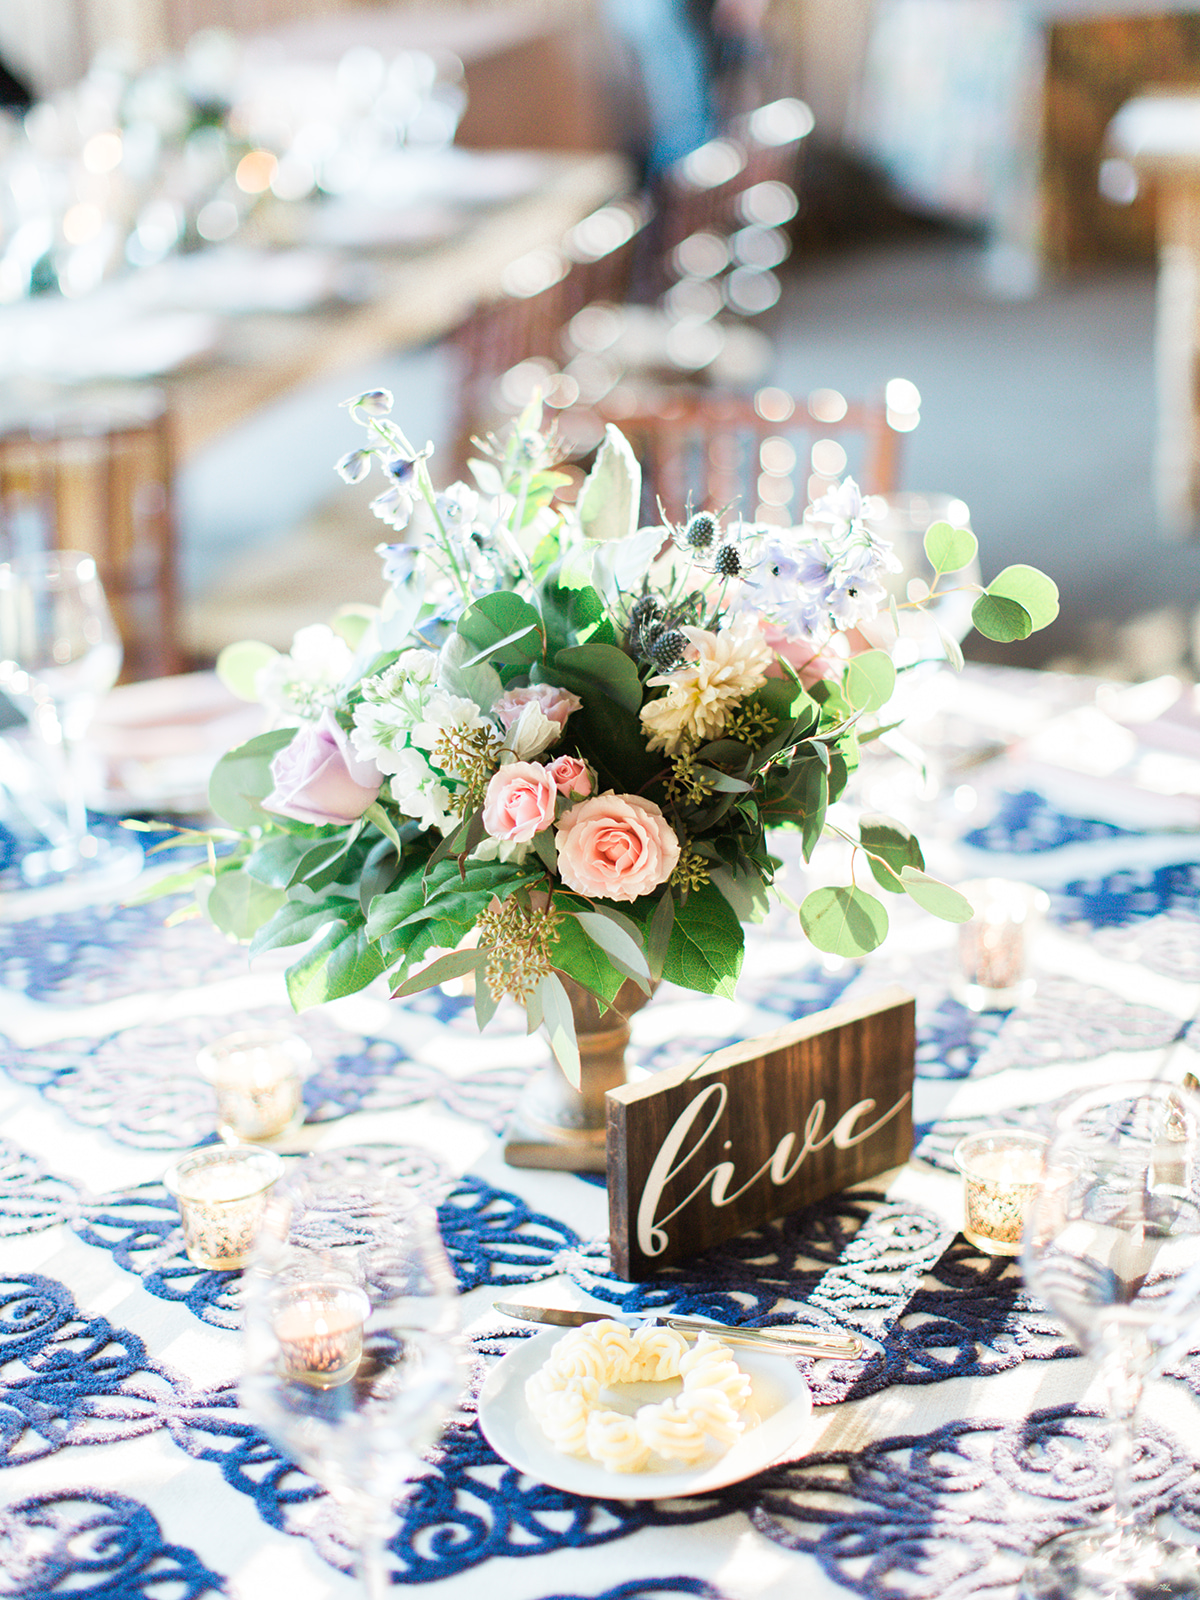 Hannah-Bjorndal-floral-centerpieces-pale-blue-pink-ivory-greenery-thistle.jpg